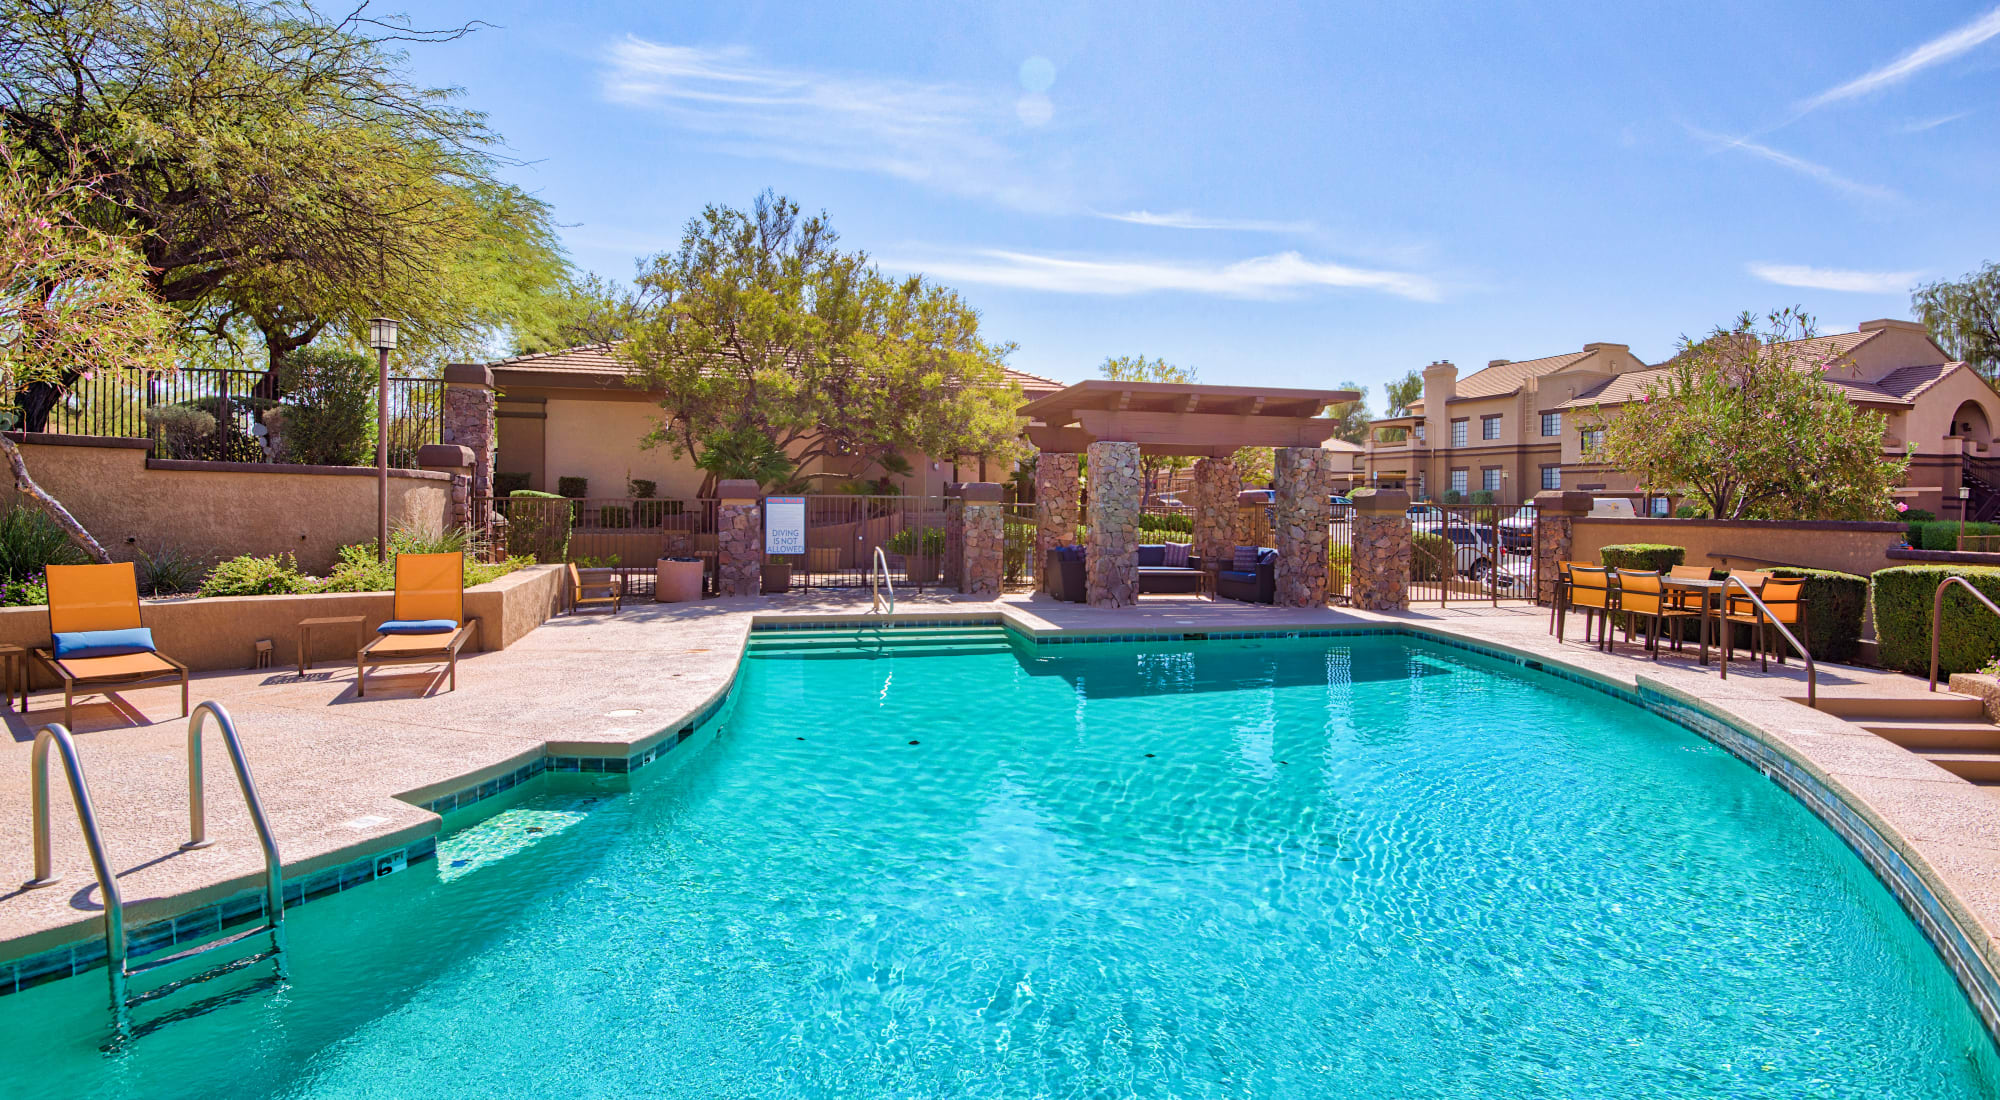 Refreshing  swimming pool at Starrview at Starr Pass apartments in Tucson, AZ